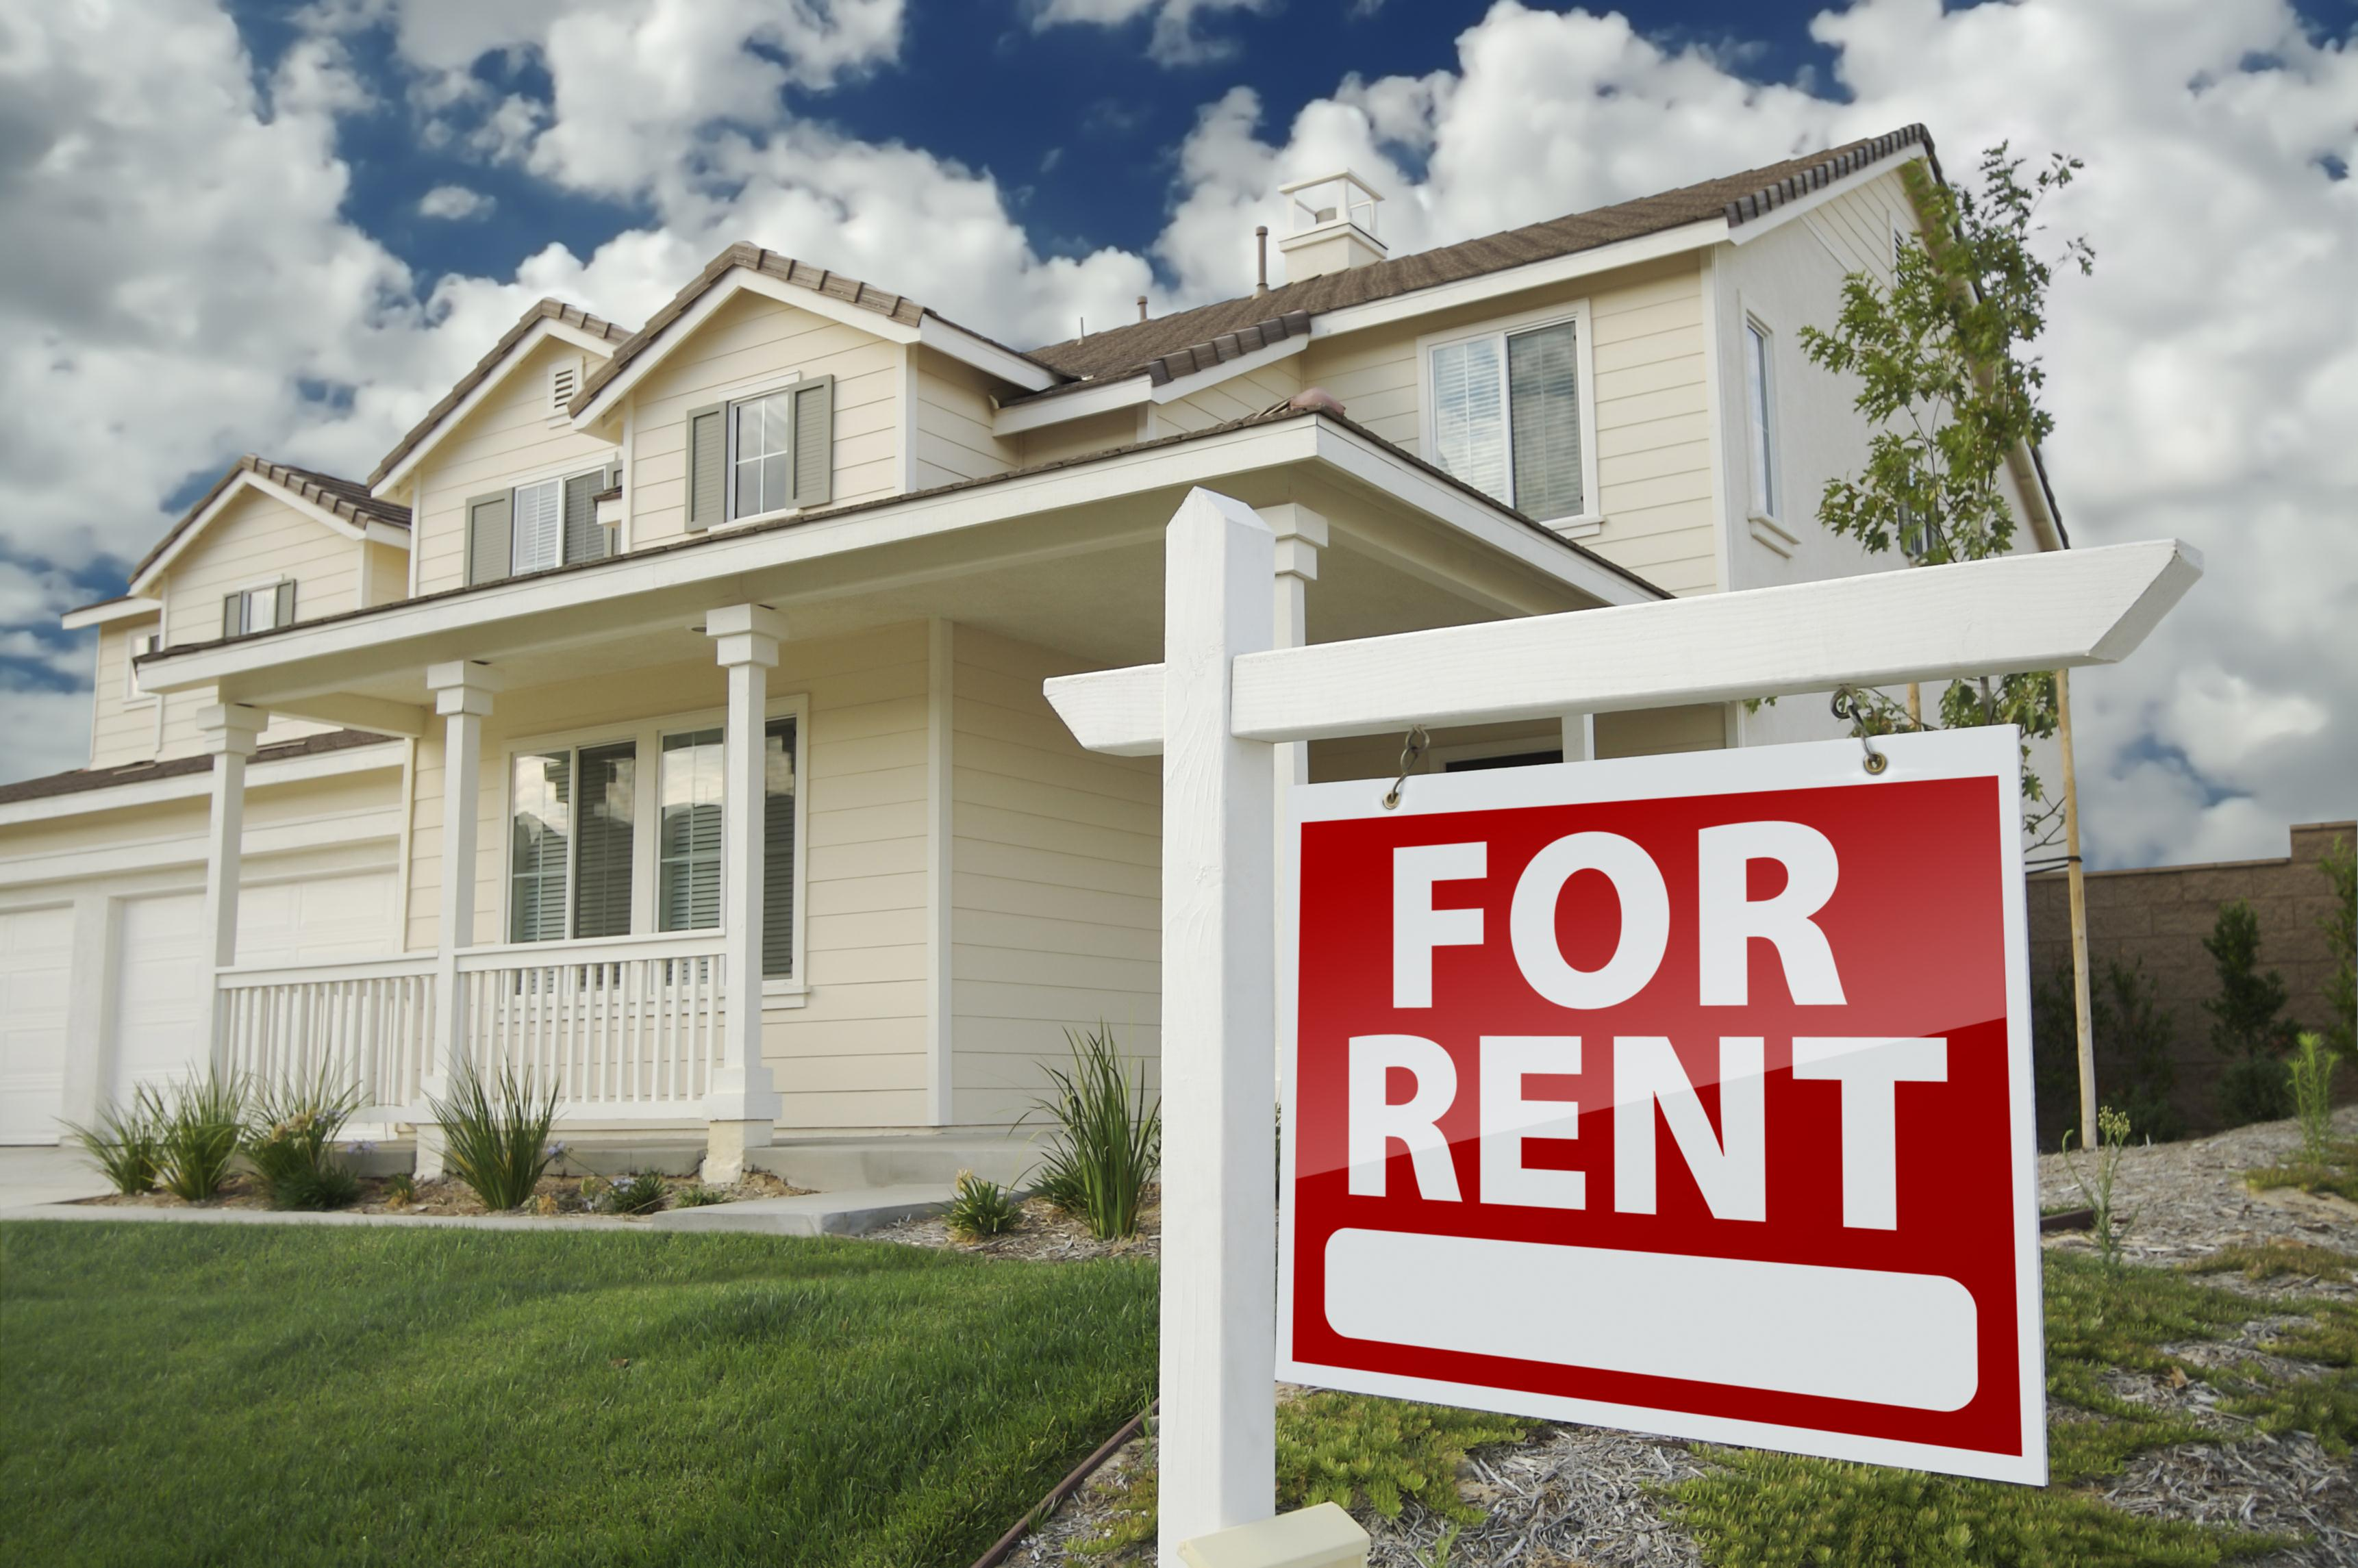 A Houses For Rent Rentals For Rent Homes For Rent Apartments Kingsland Rentals